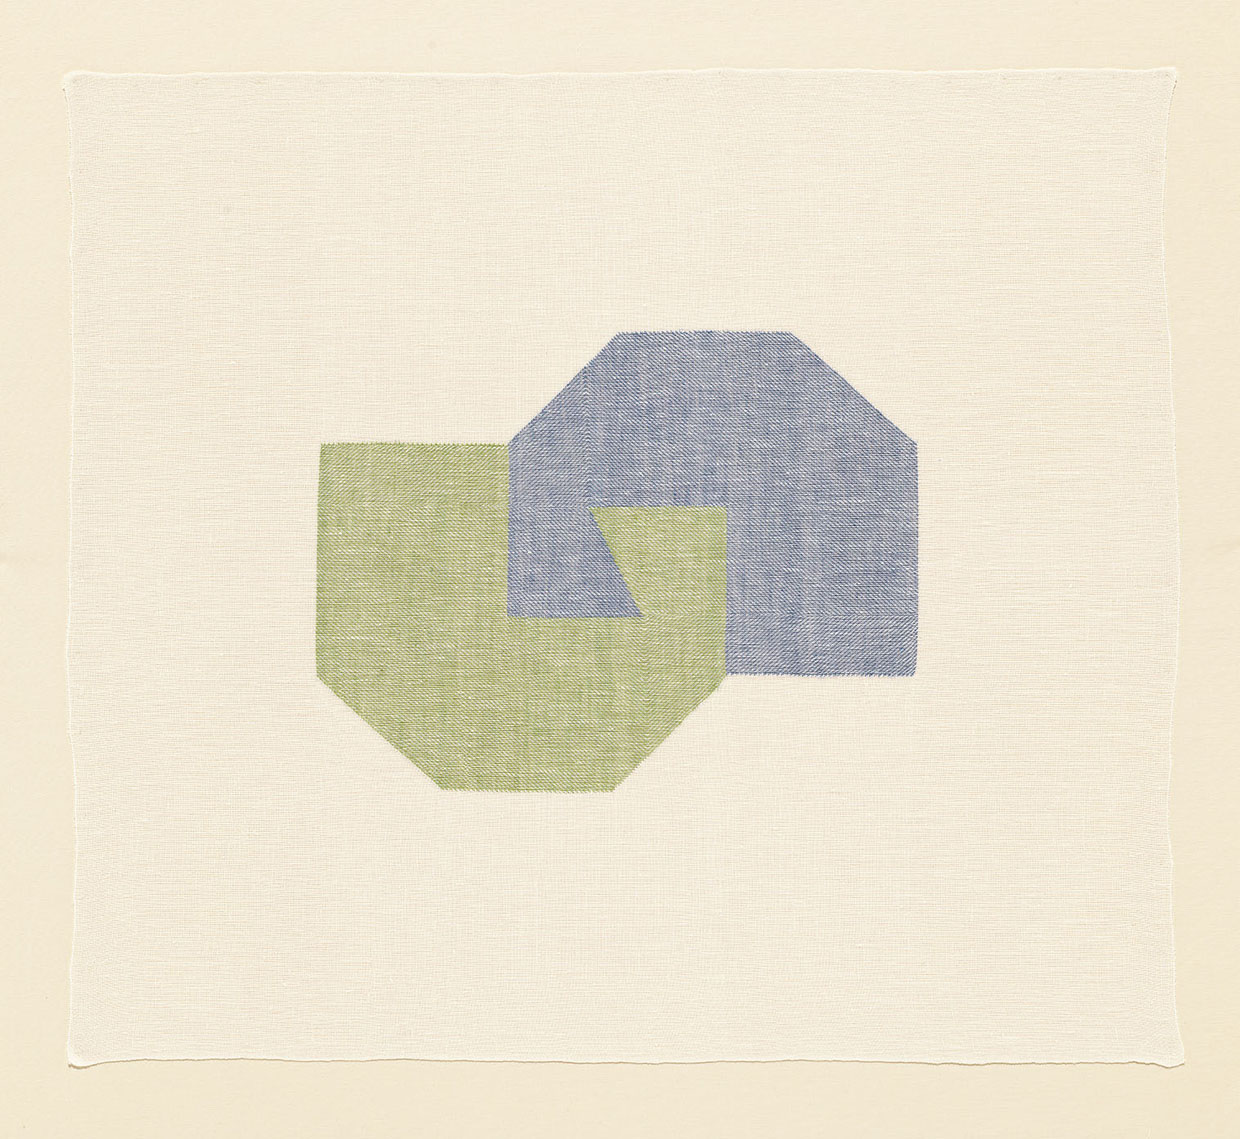 Ruth Laskey, Twill Series (Wasabi/Wedgewood Blue), 2016, hand-woven and hand-dyed linen, 25x27.5 inches